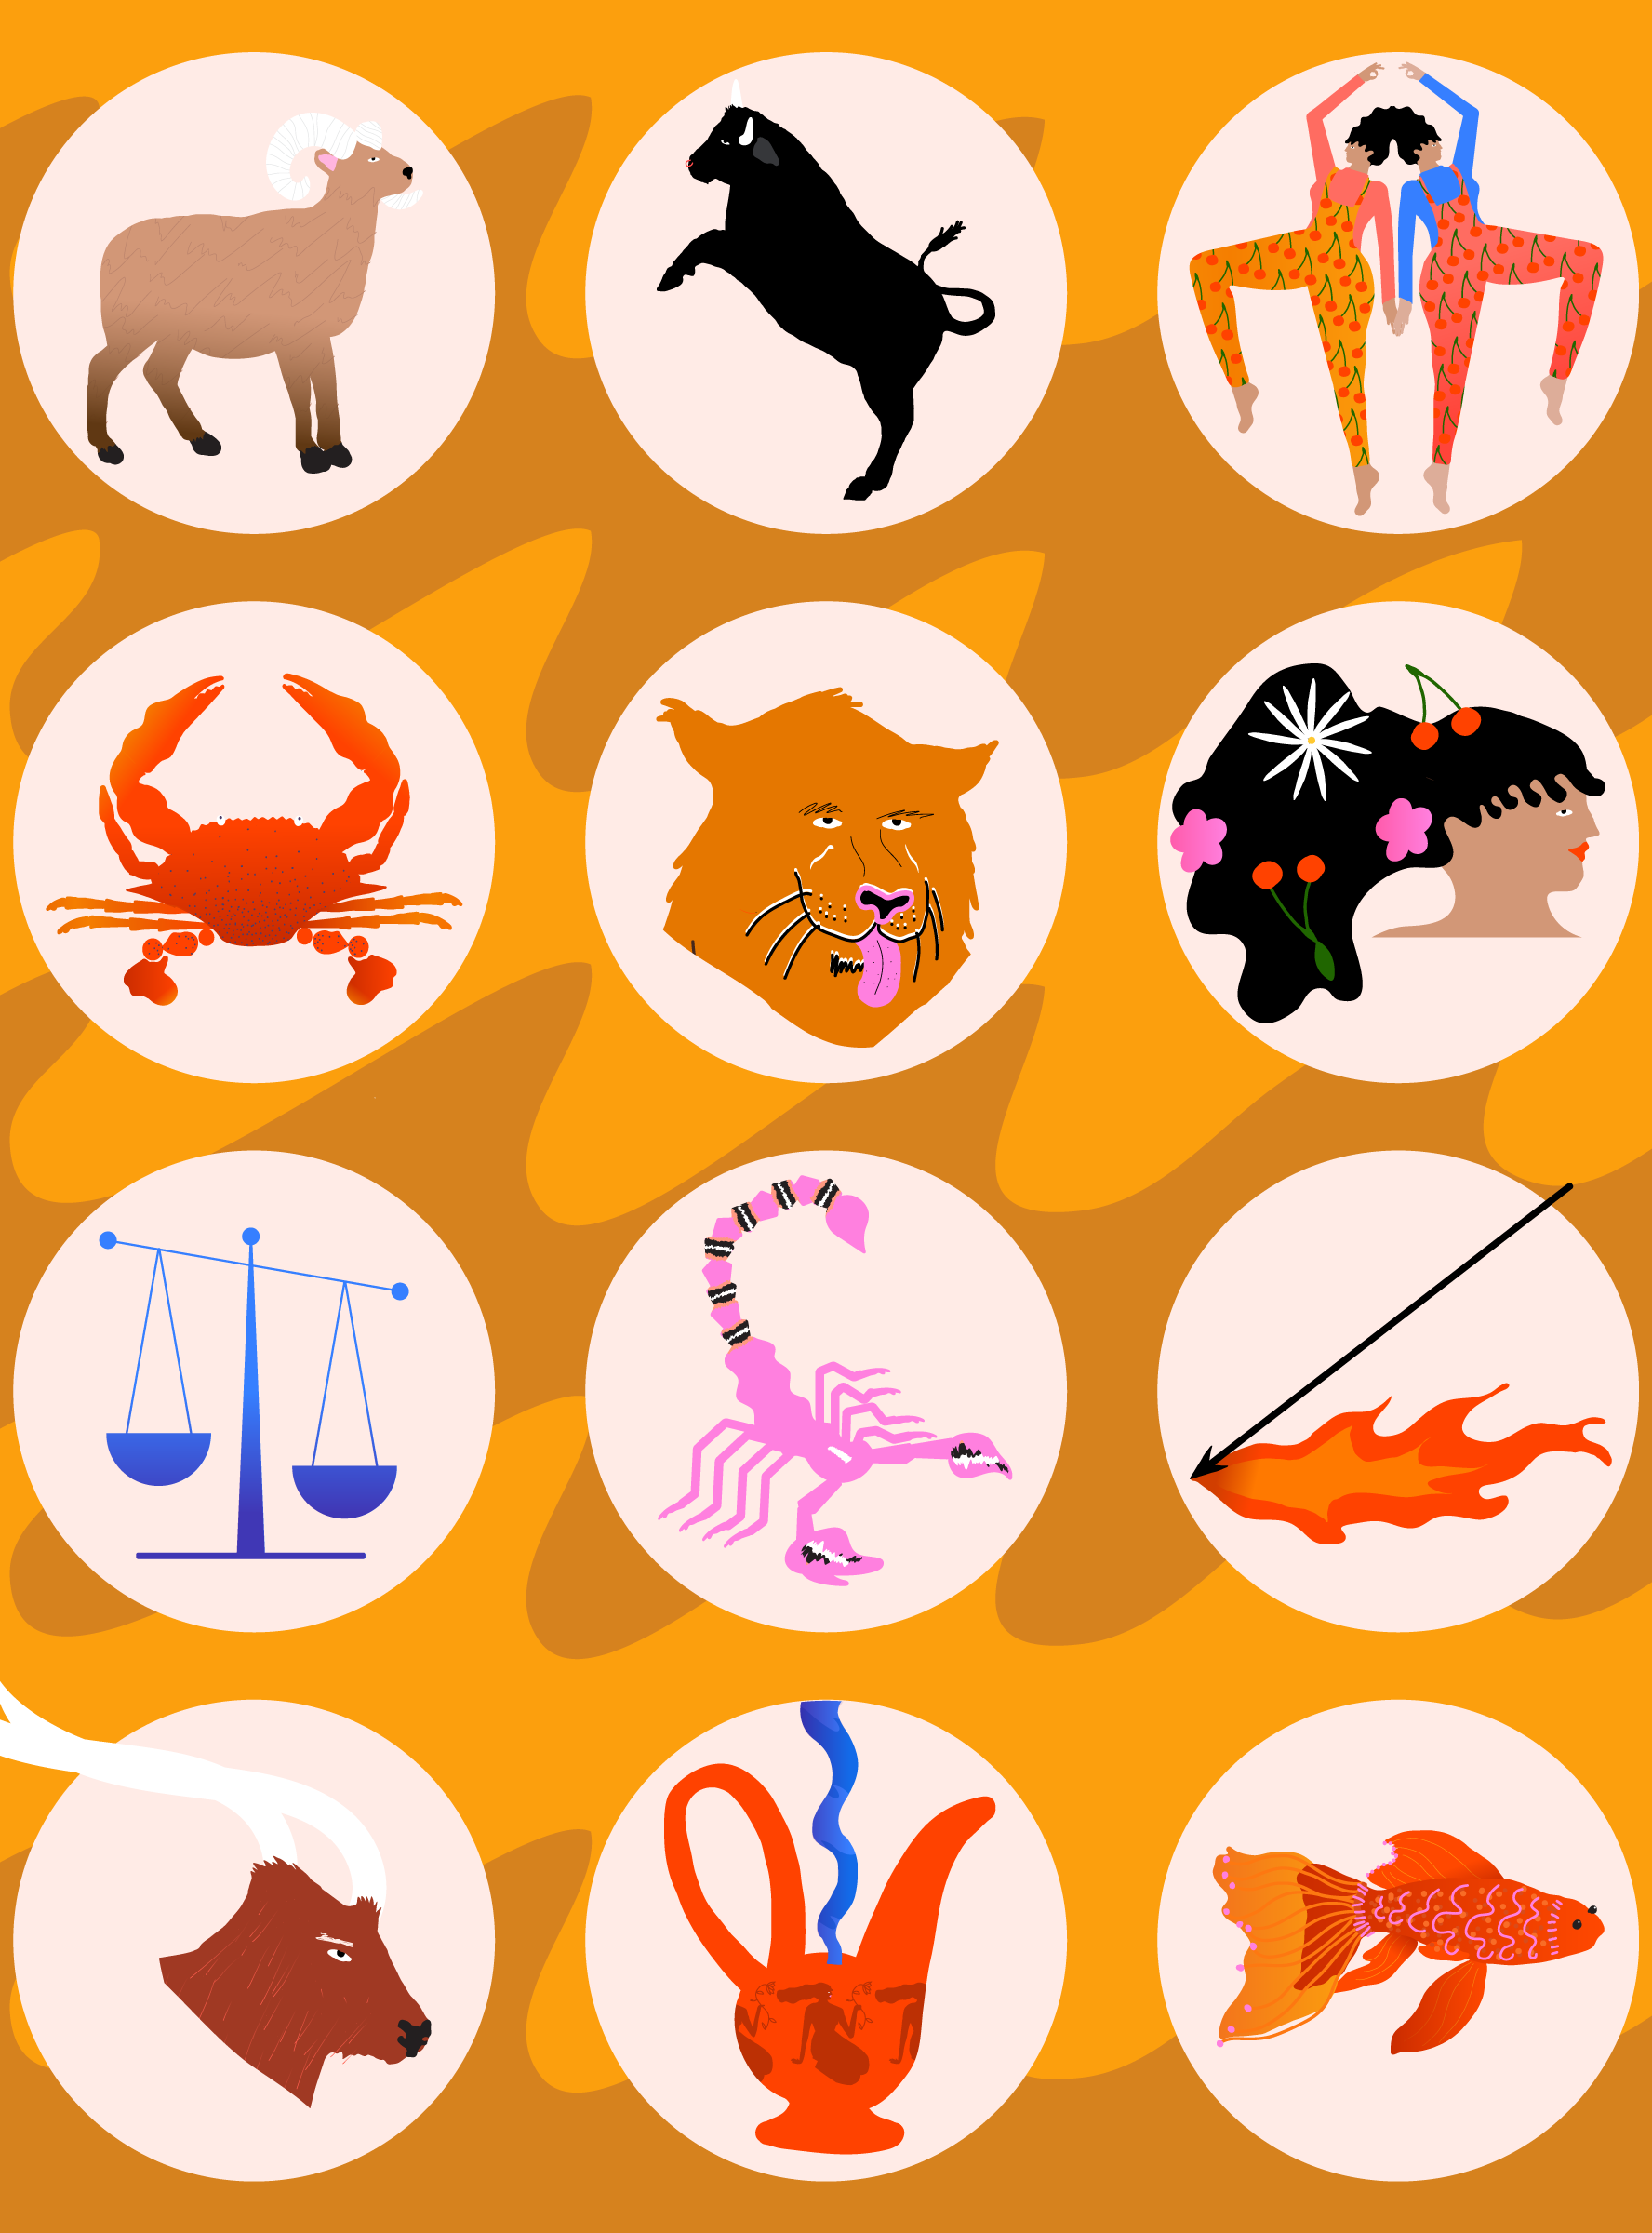 Forum on this topic: Your January Horoscope Is Here, and It's , your-january-horoscope-is-here-and-its/